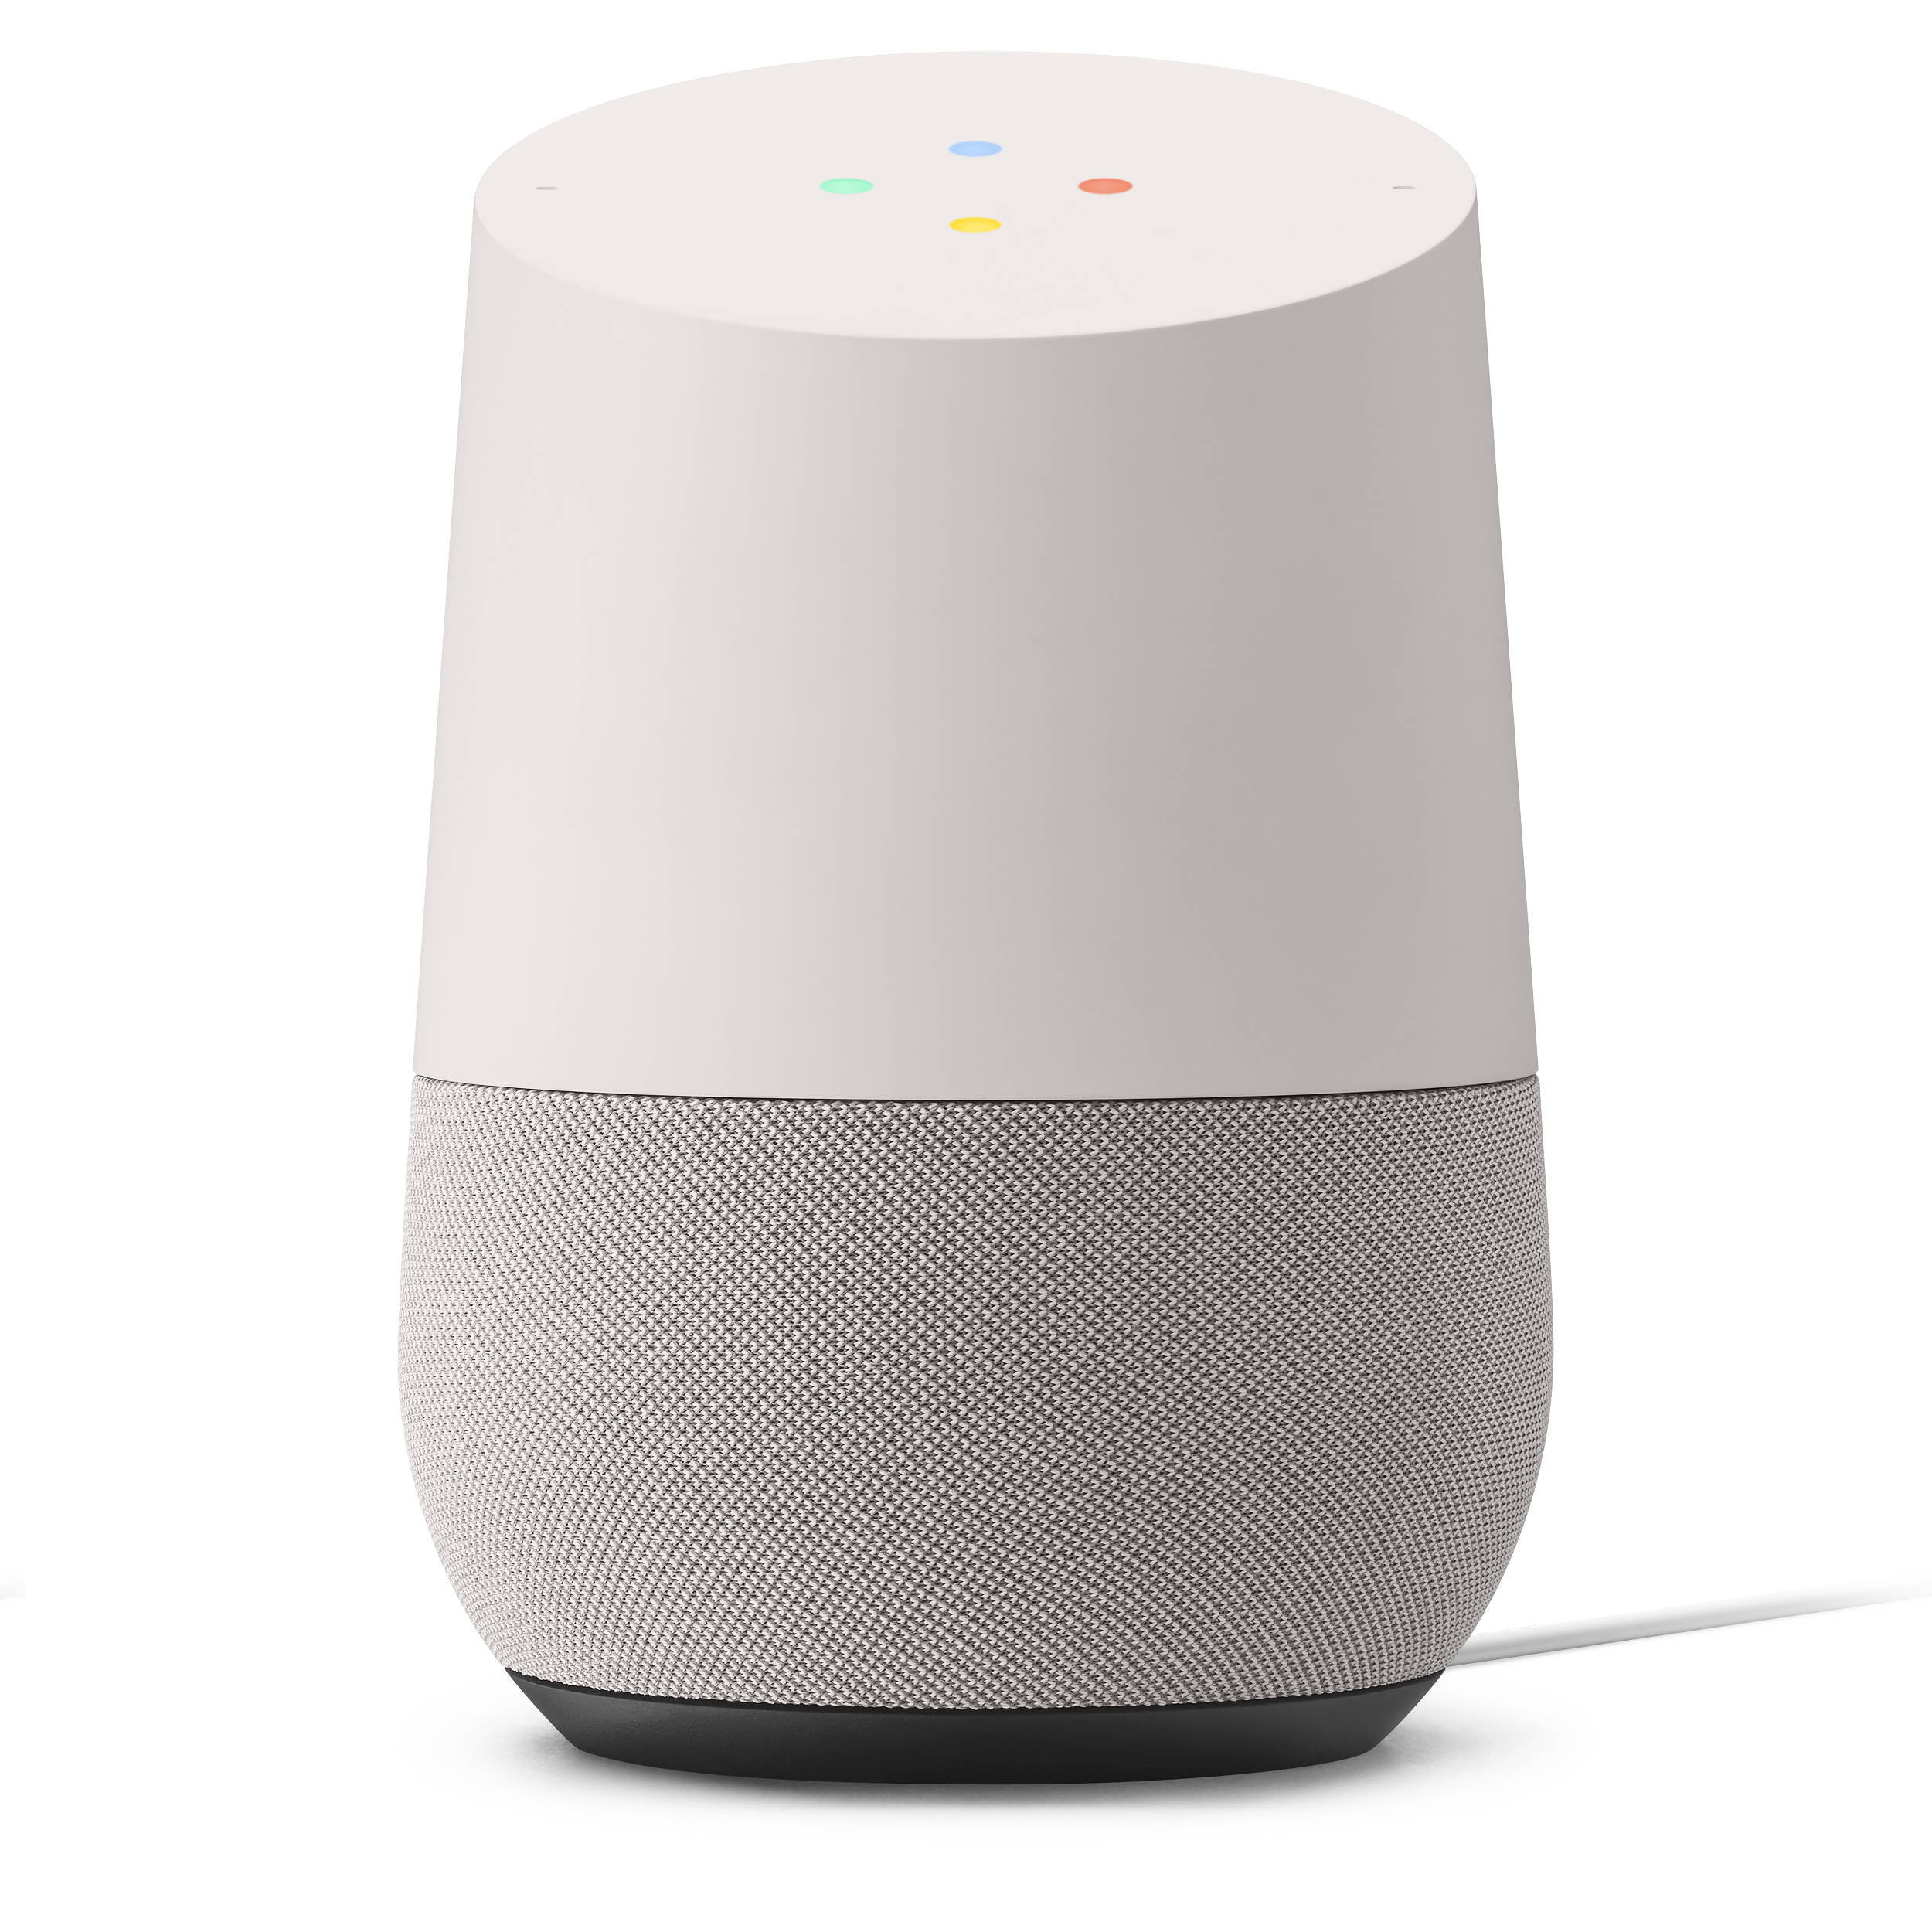 Google Home (White Slate) GA3A00417A14 B&H Photo Video